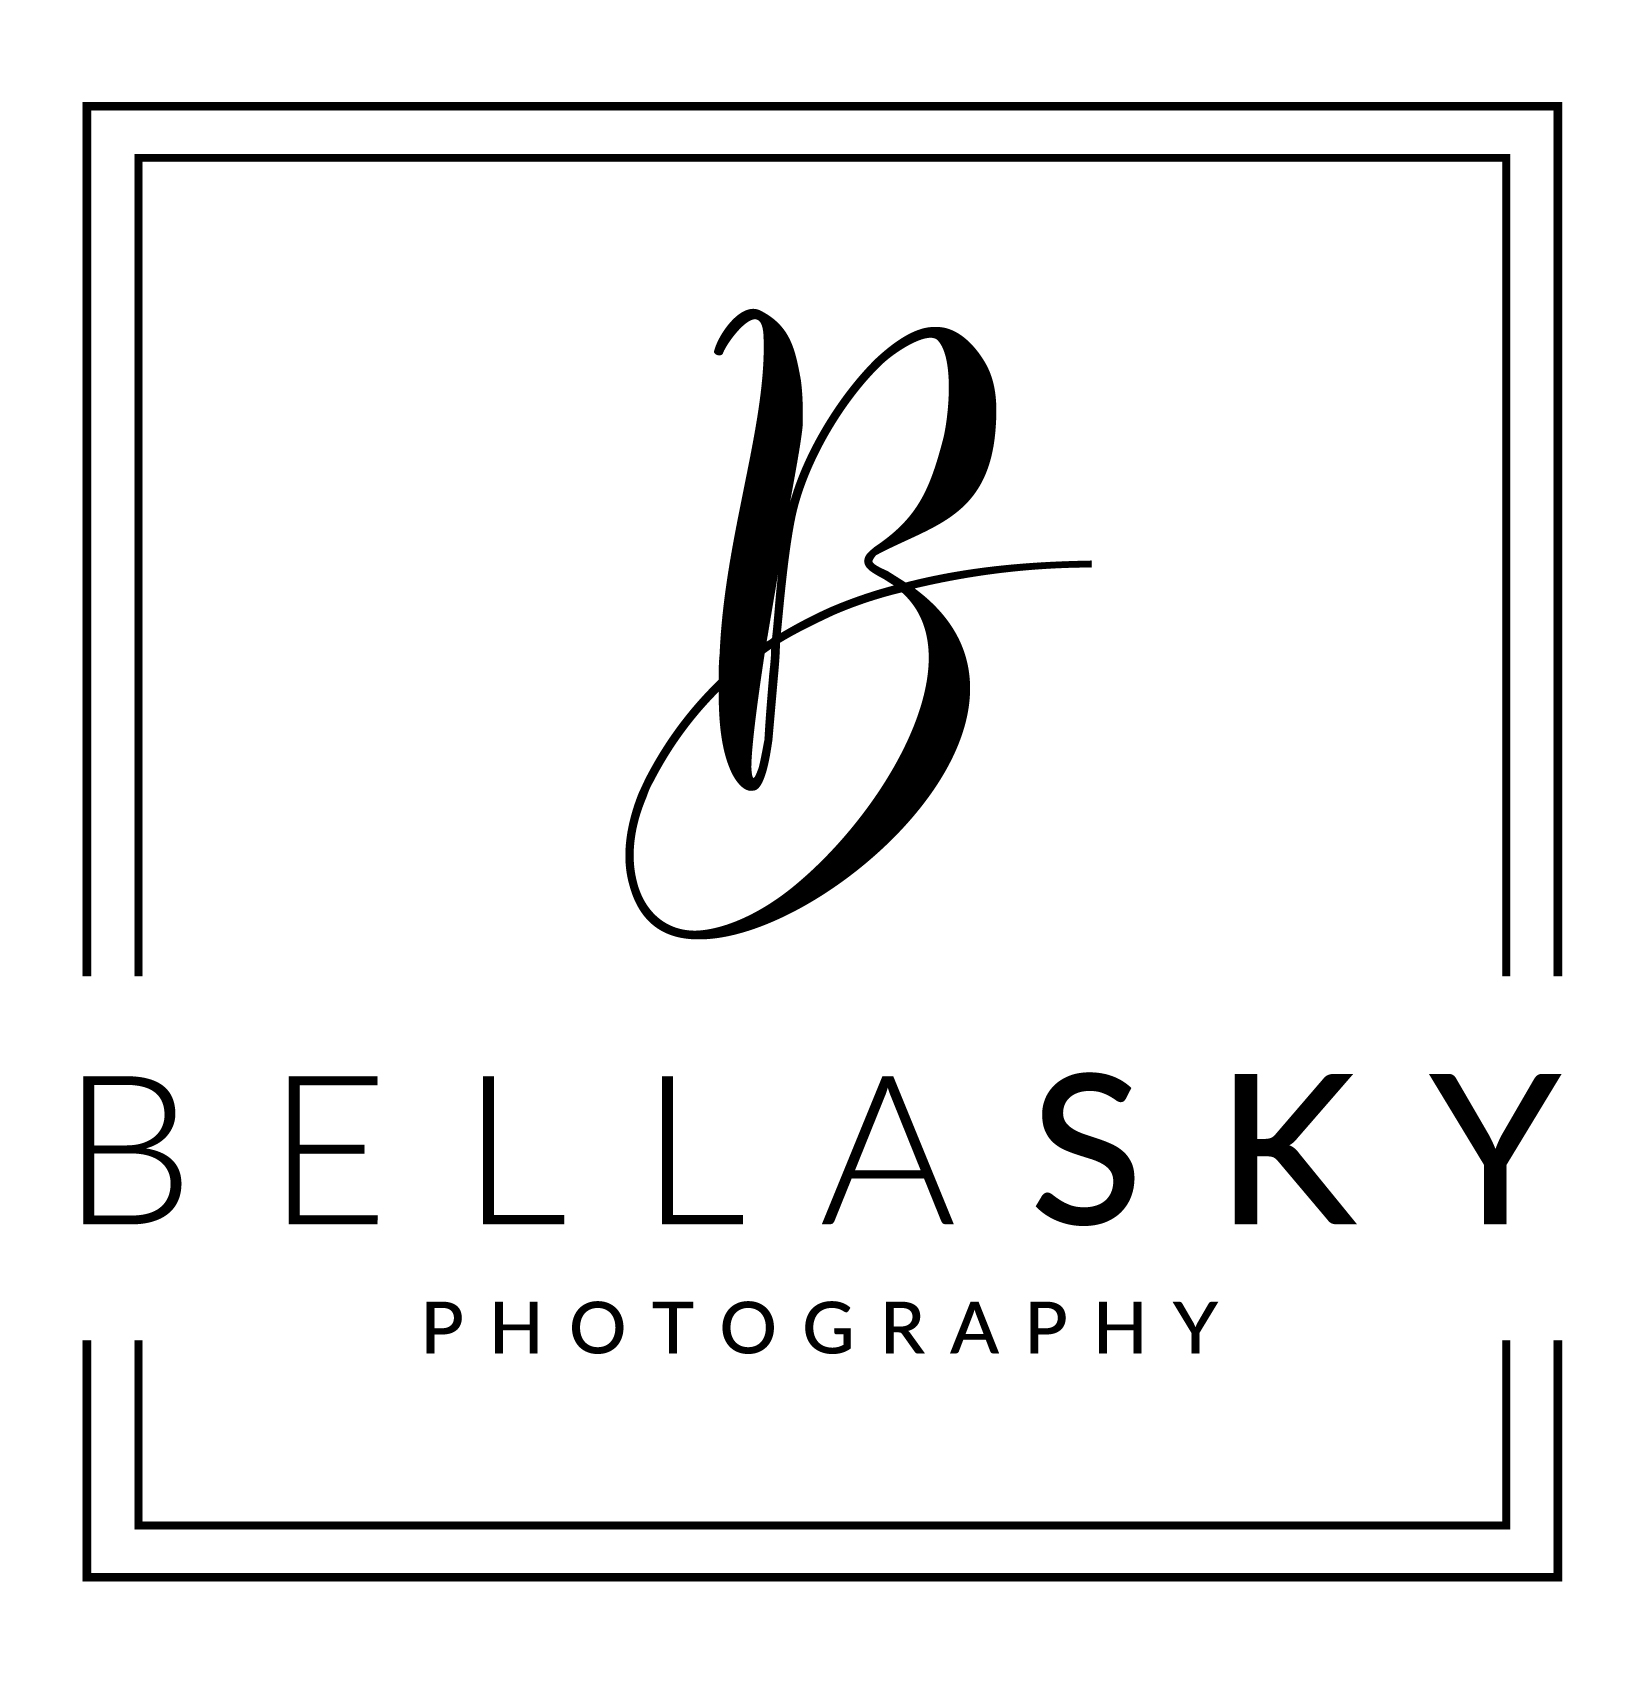 BellaSky Photography